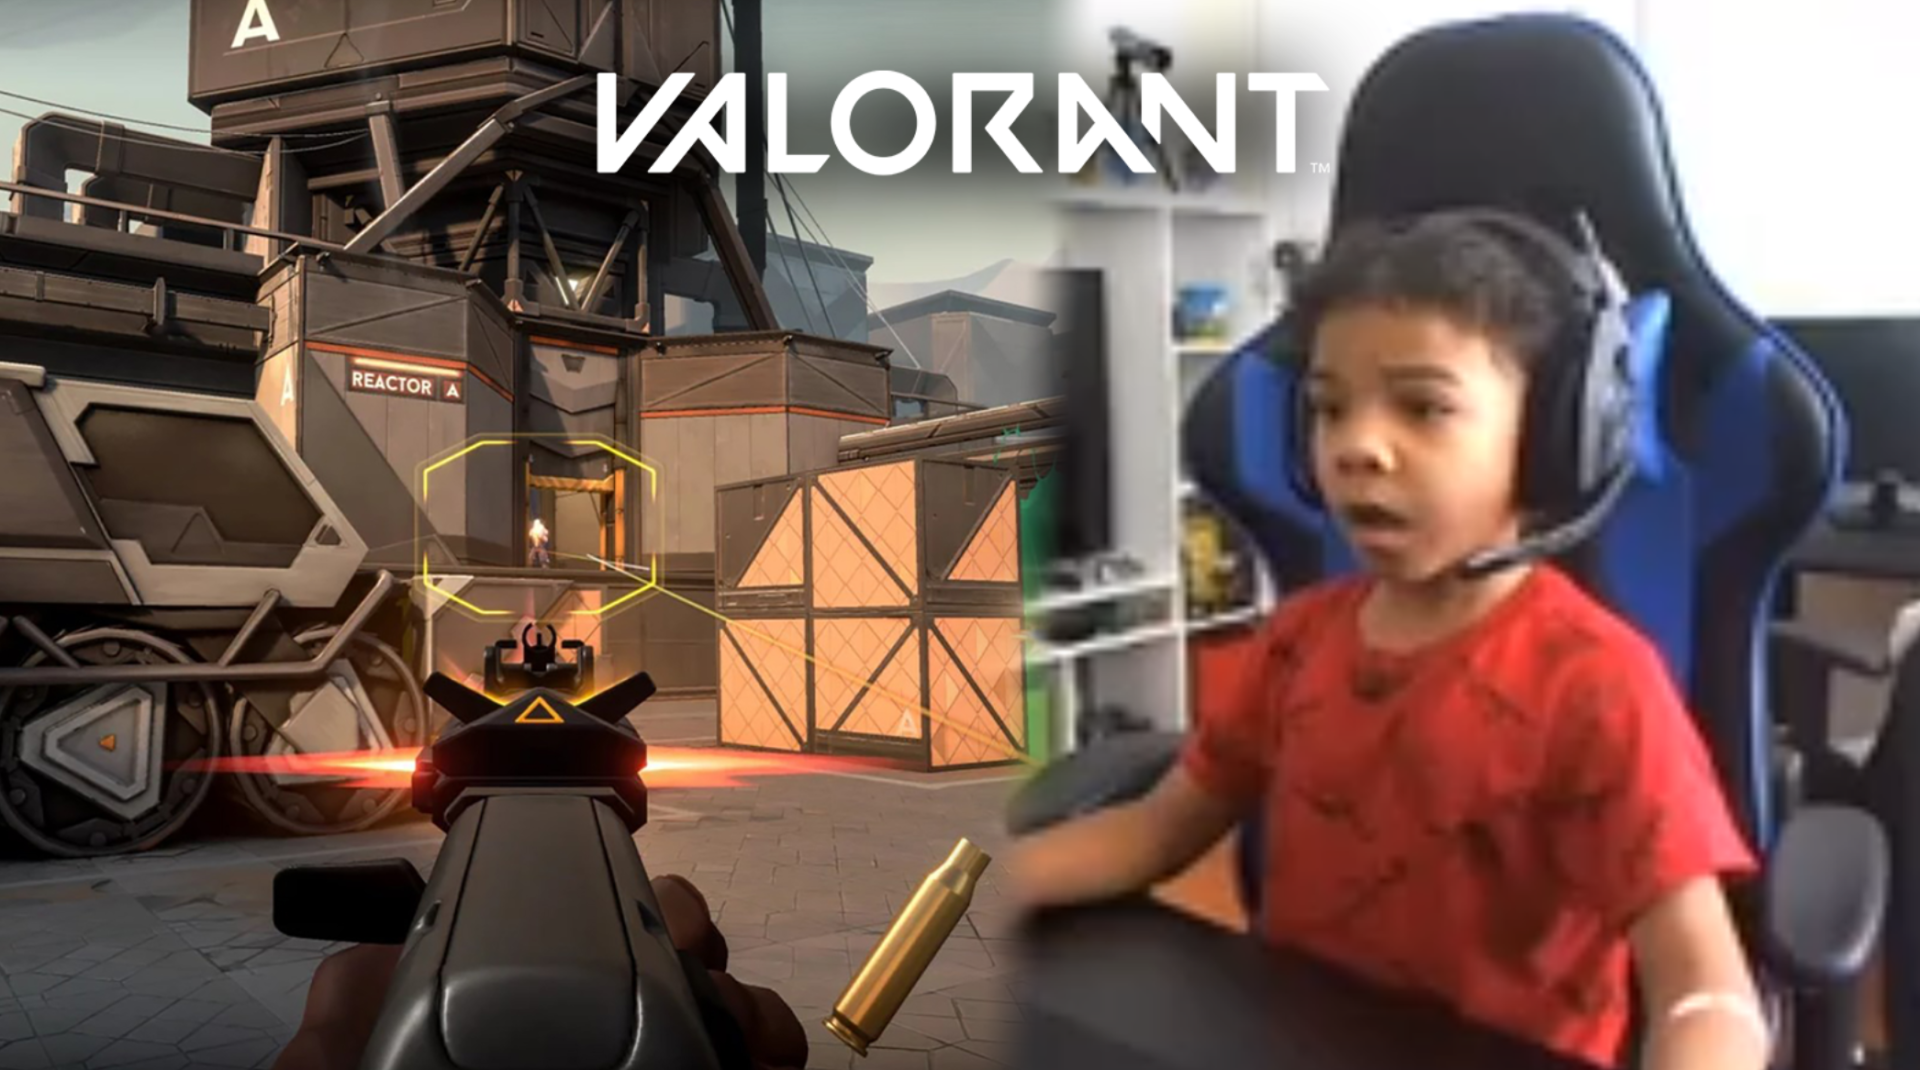 Five year old Valorant player